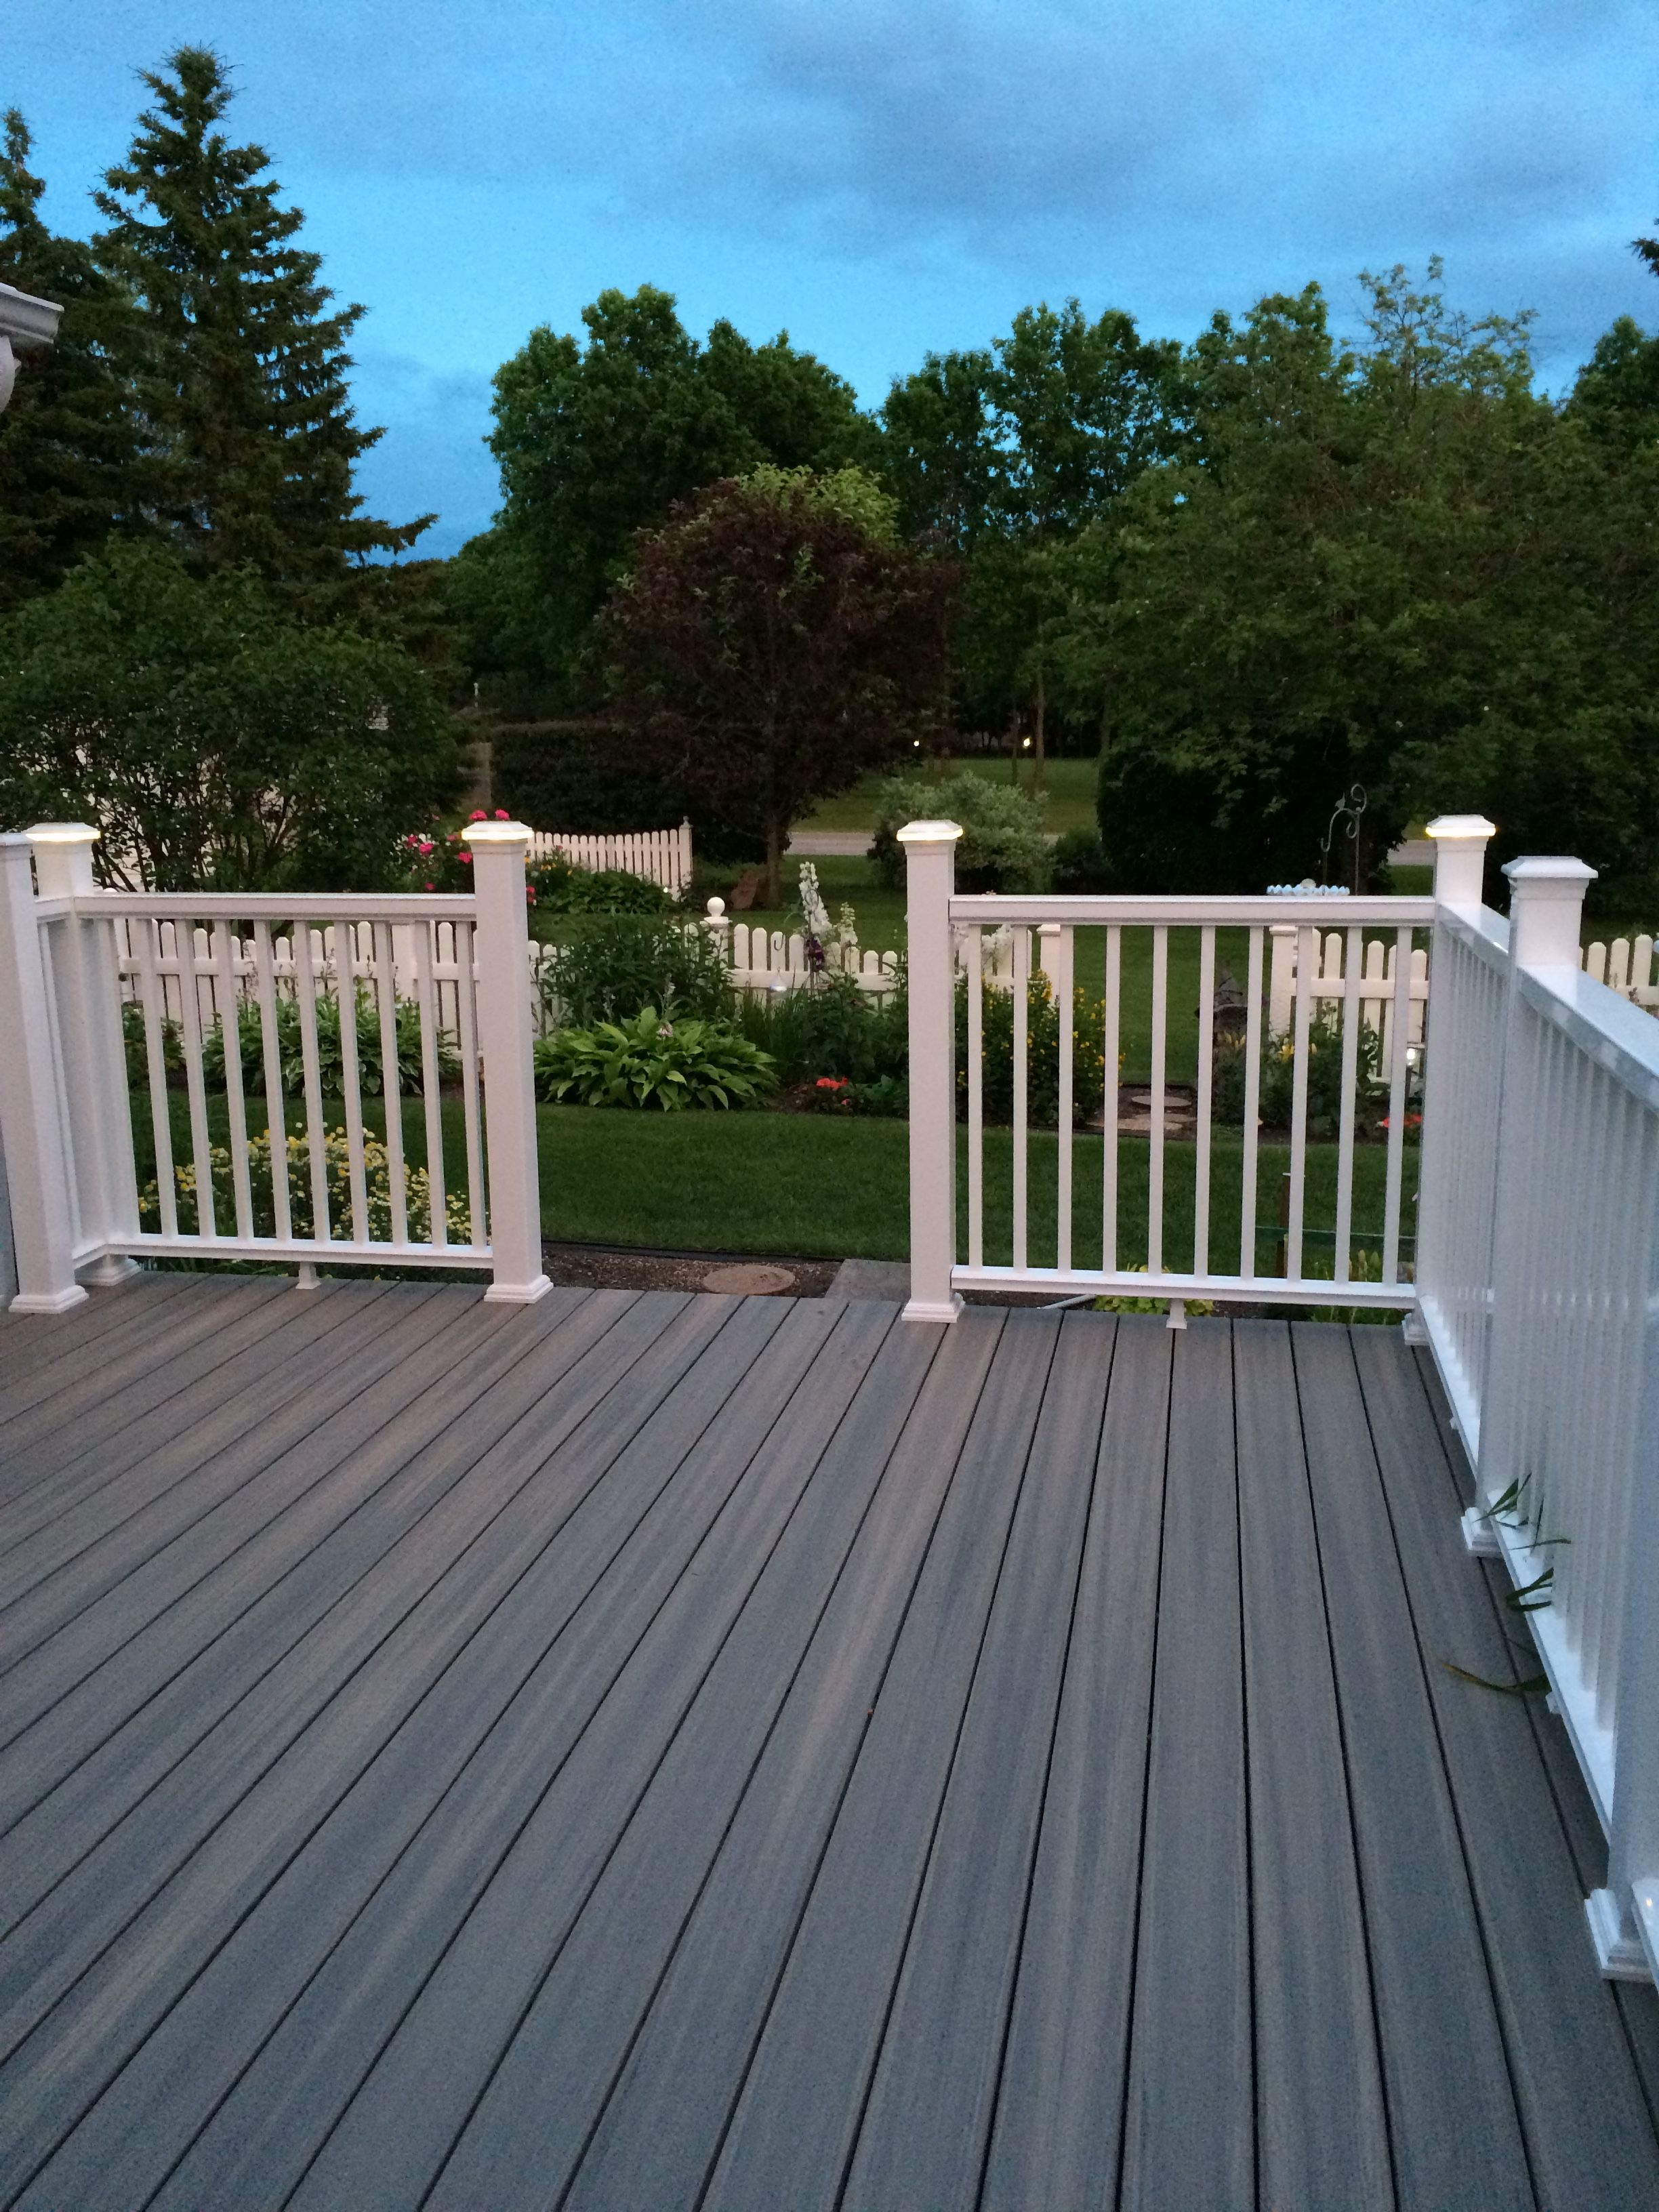 When You Ve Got A Great View You Can Keep It Simple In Terms Of Aesthetics And Maintenance Paramount P Building A Deck Outdoor Living Deck Deck Building Cost